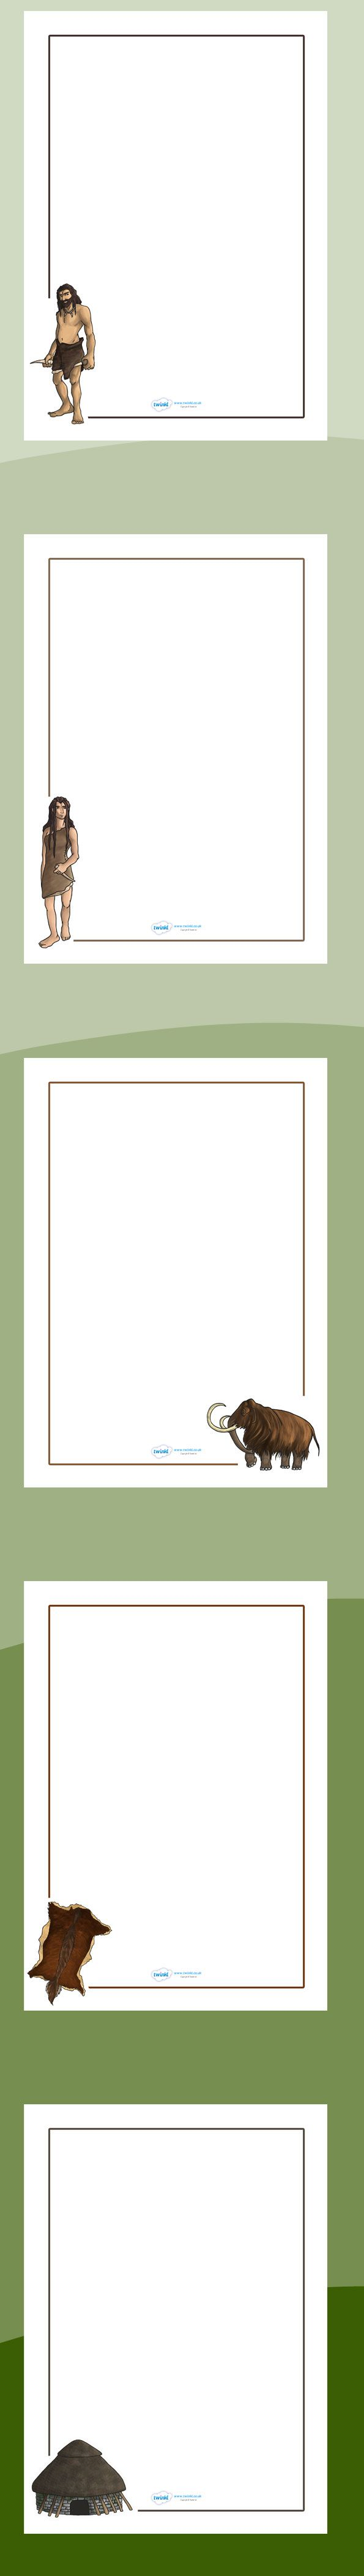 KS2 The Stone Age- The Stone Age Page Borders